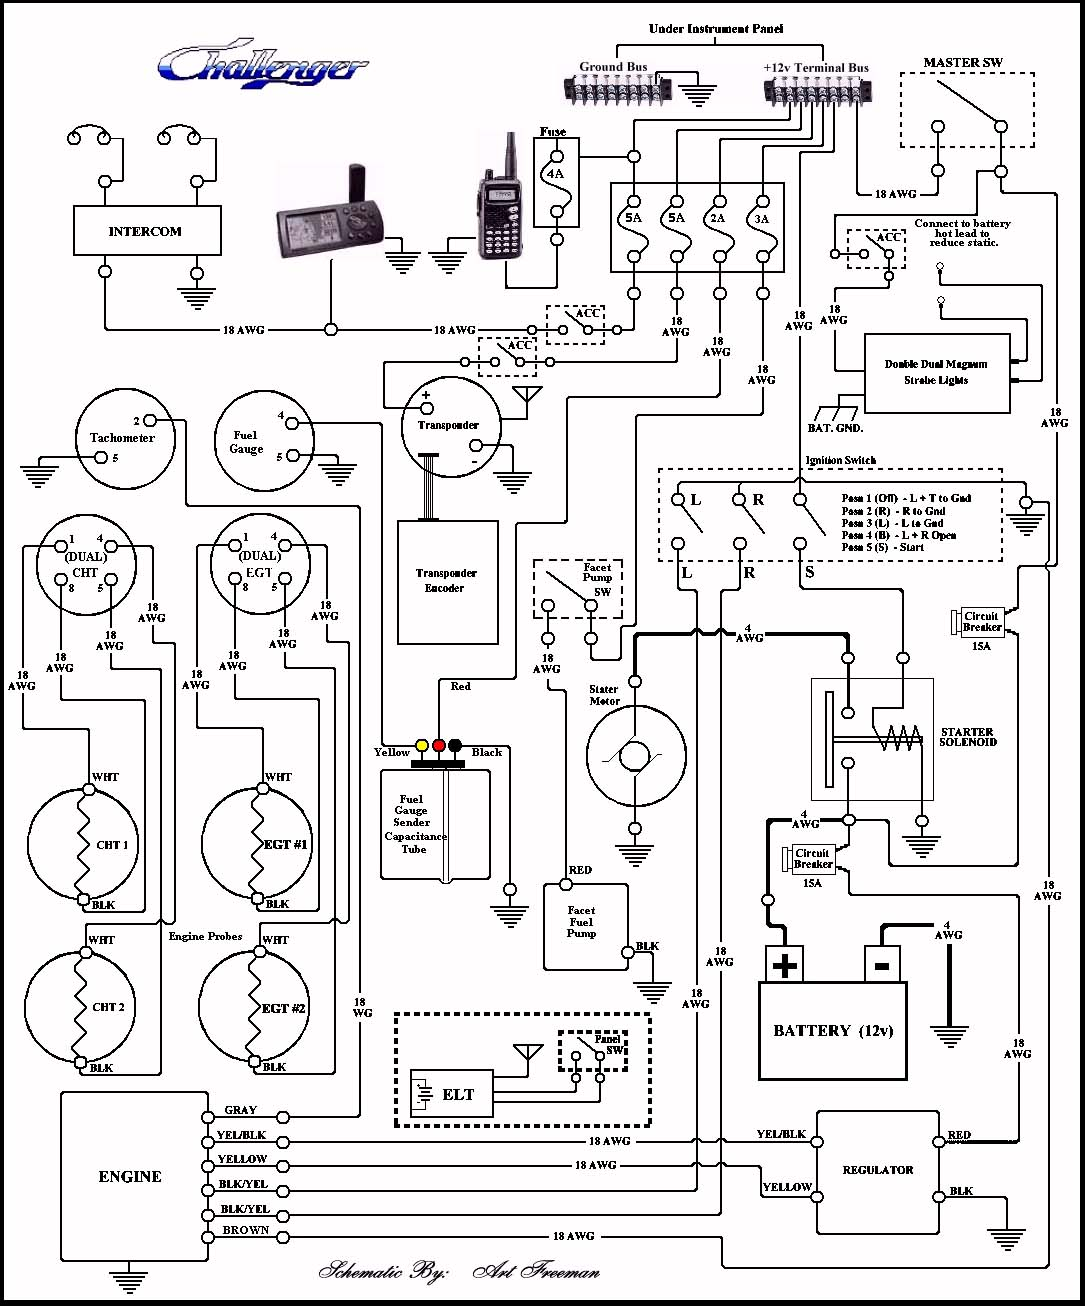 Schem_Analog basic wiring of fuselage, instruments and power source cessna 172 wiring diagram at alyssarenee.co